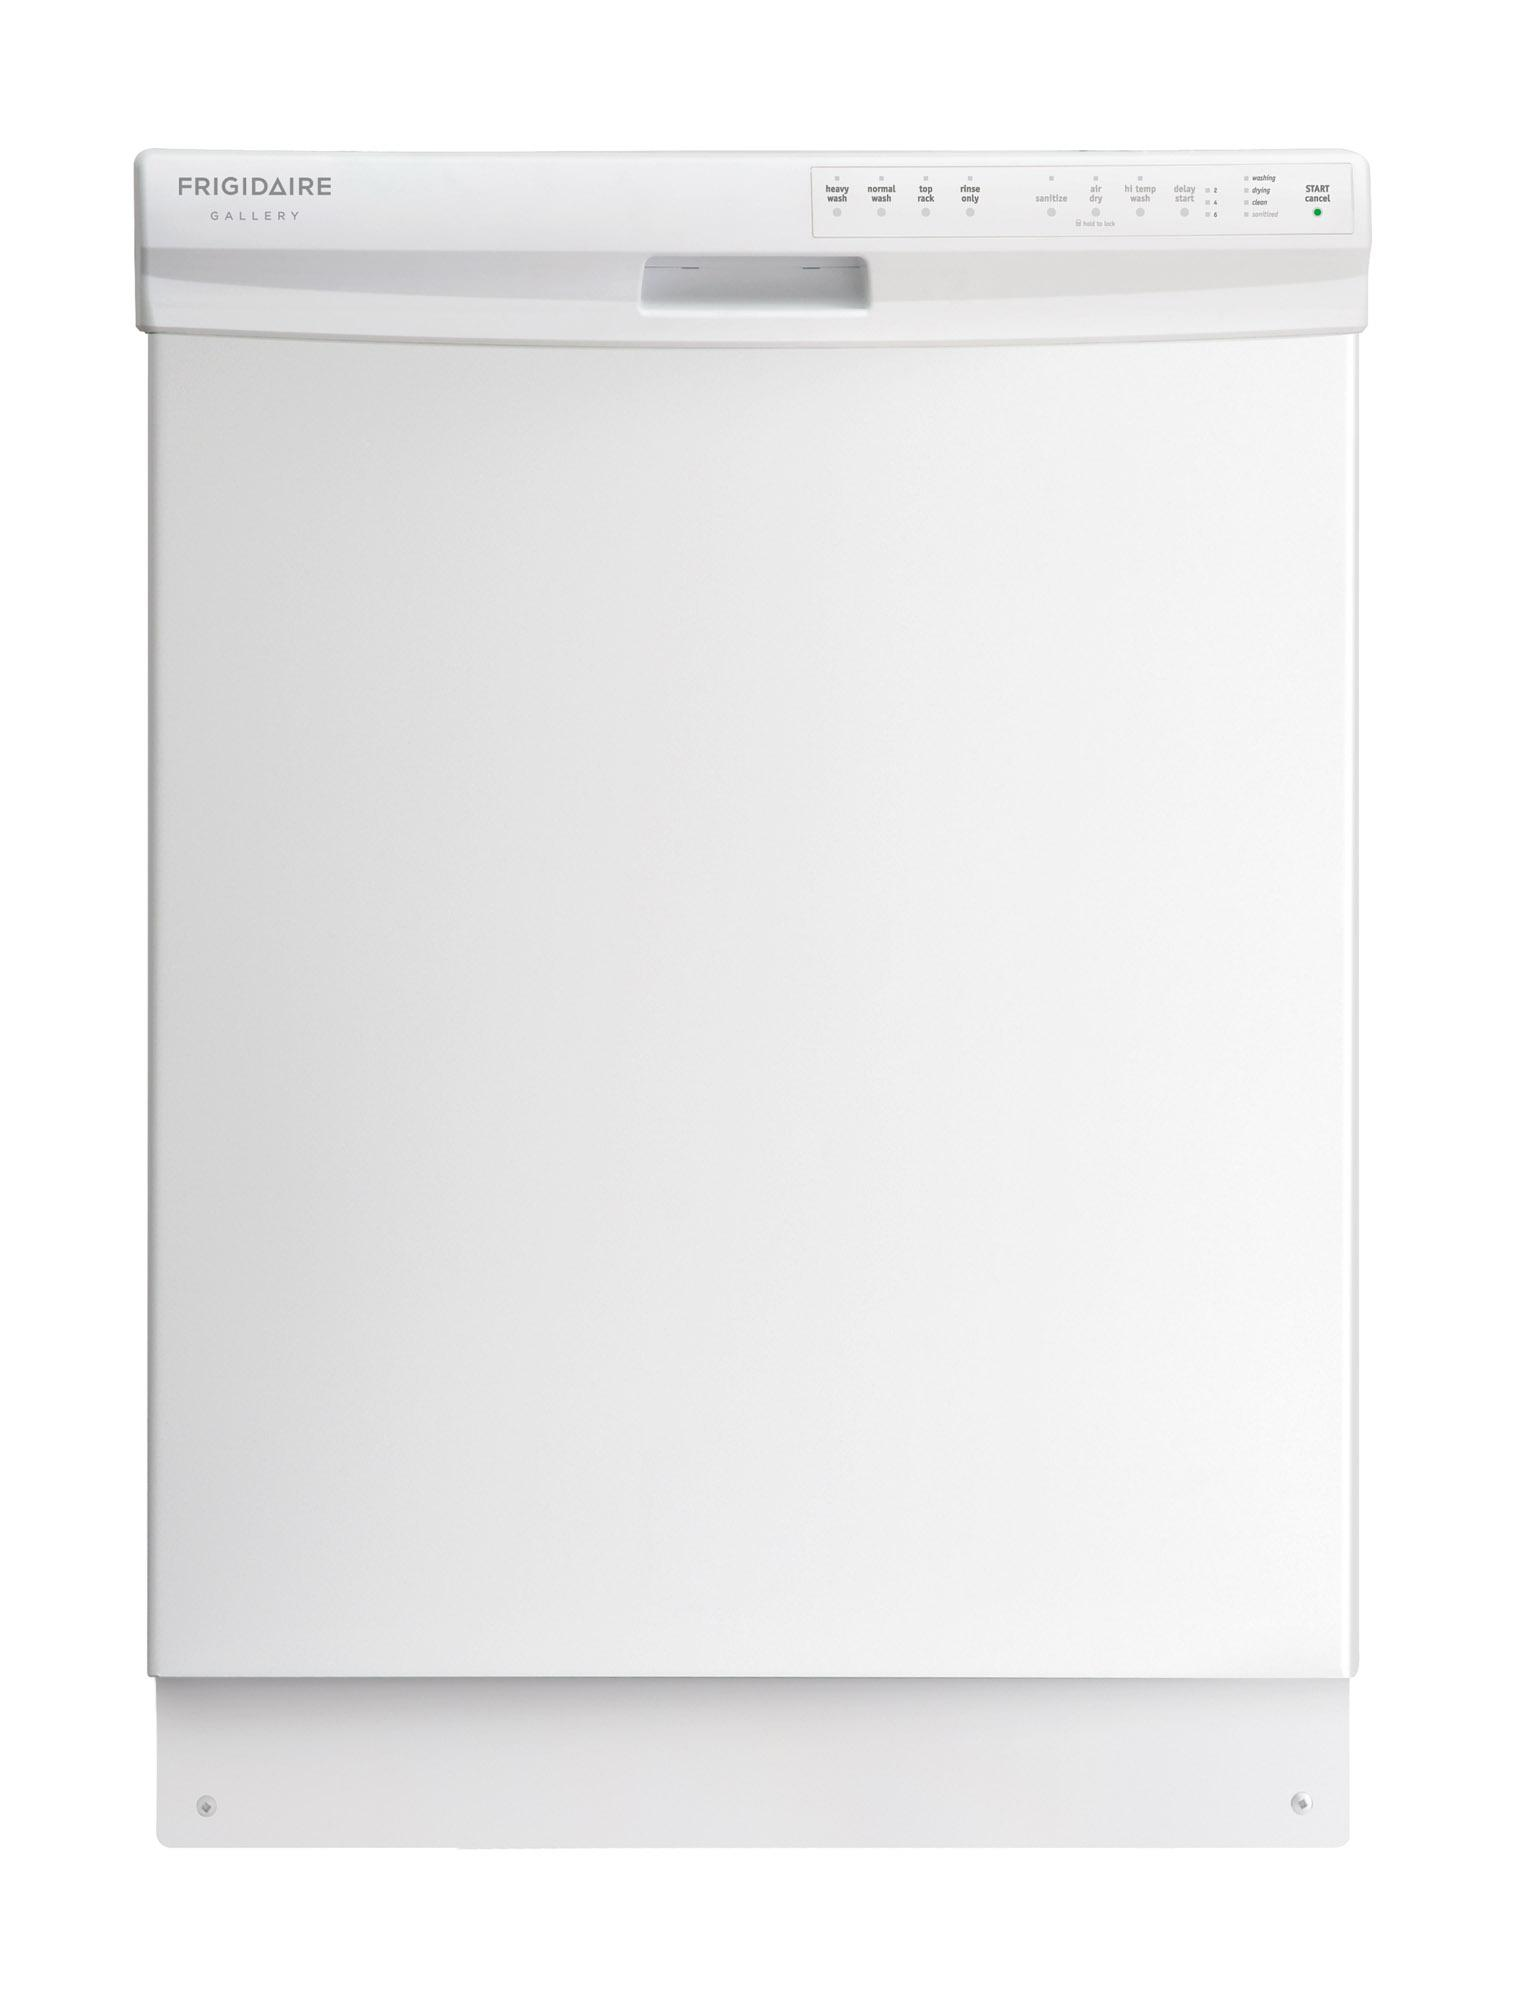 "Frigidaire Frigidaire Gallery Dishwashers 24"" Gallery Built-In Dishwasher - Item Number: FGBD2438PW"